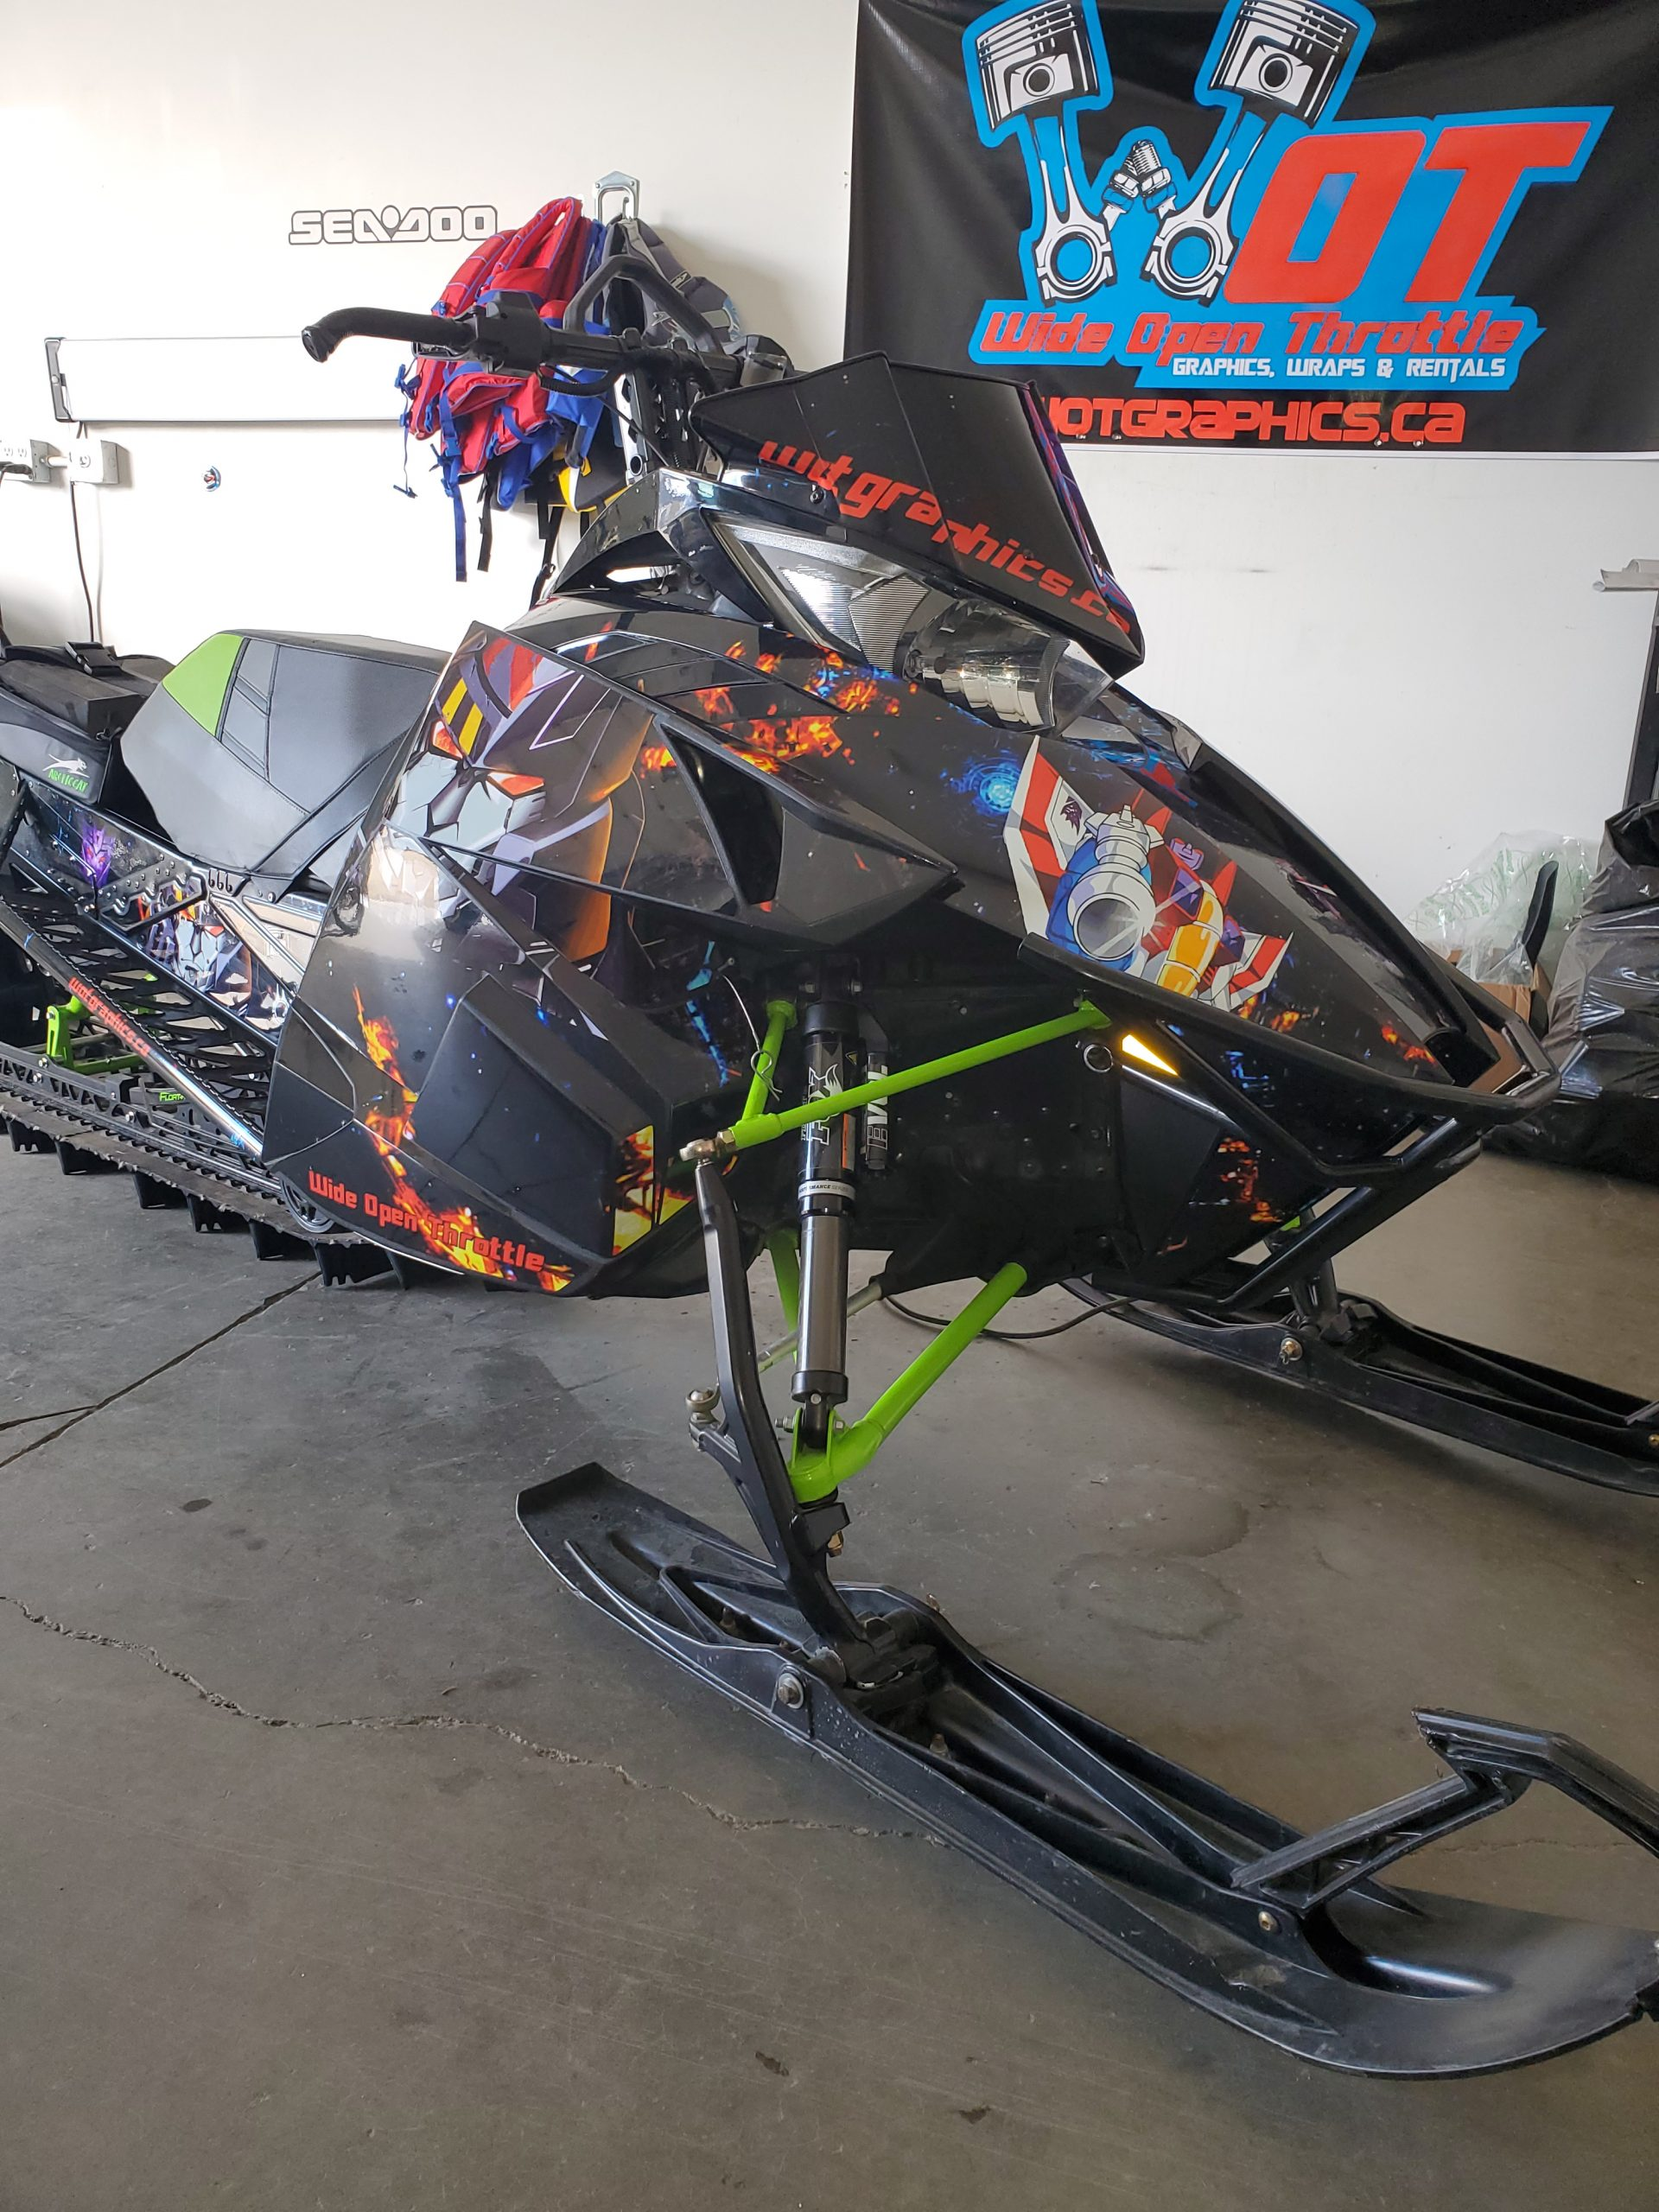 wrapped arctic cat sled rental